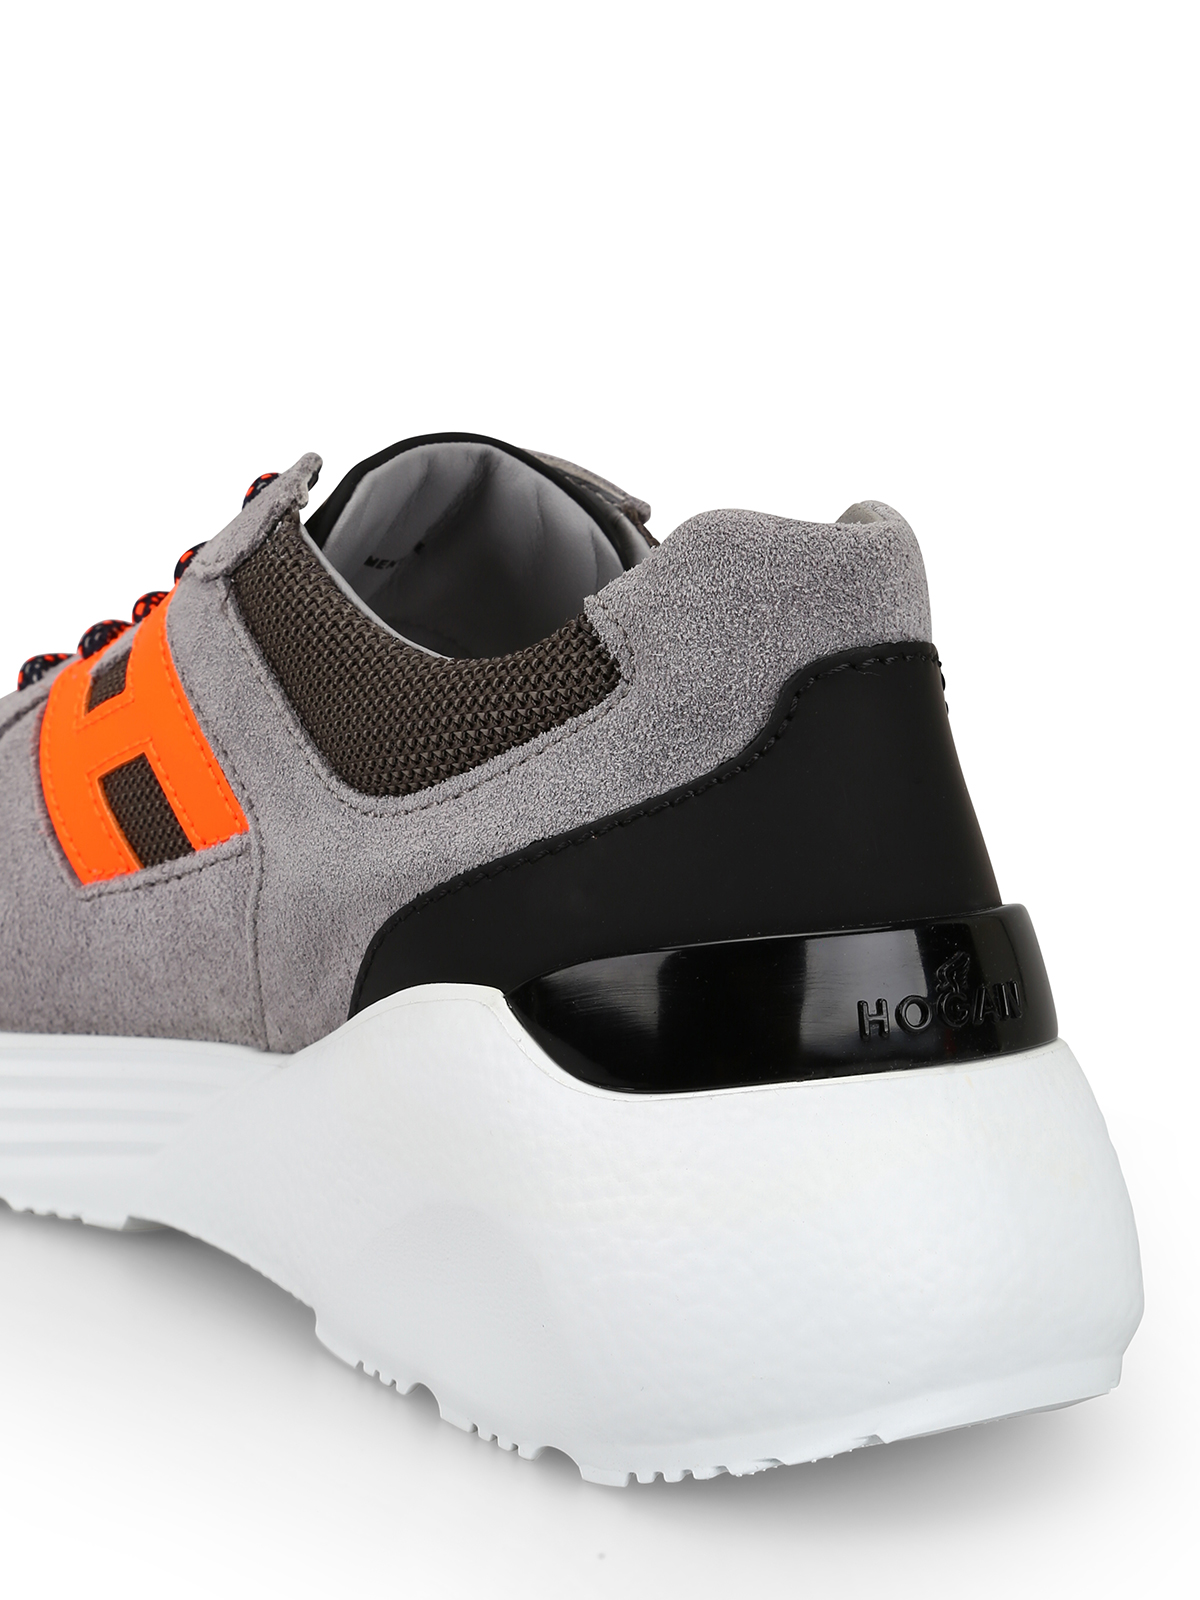 Trainers Hogan - Active One grey and orange sneakers ...